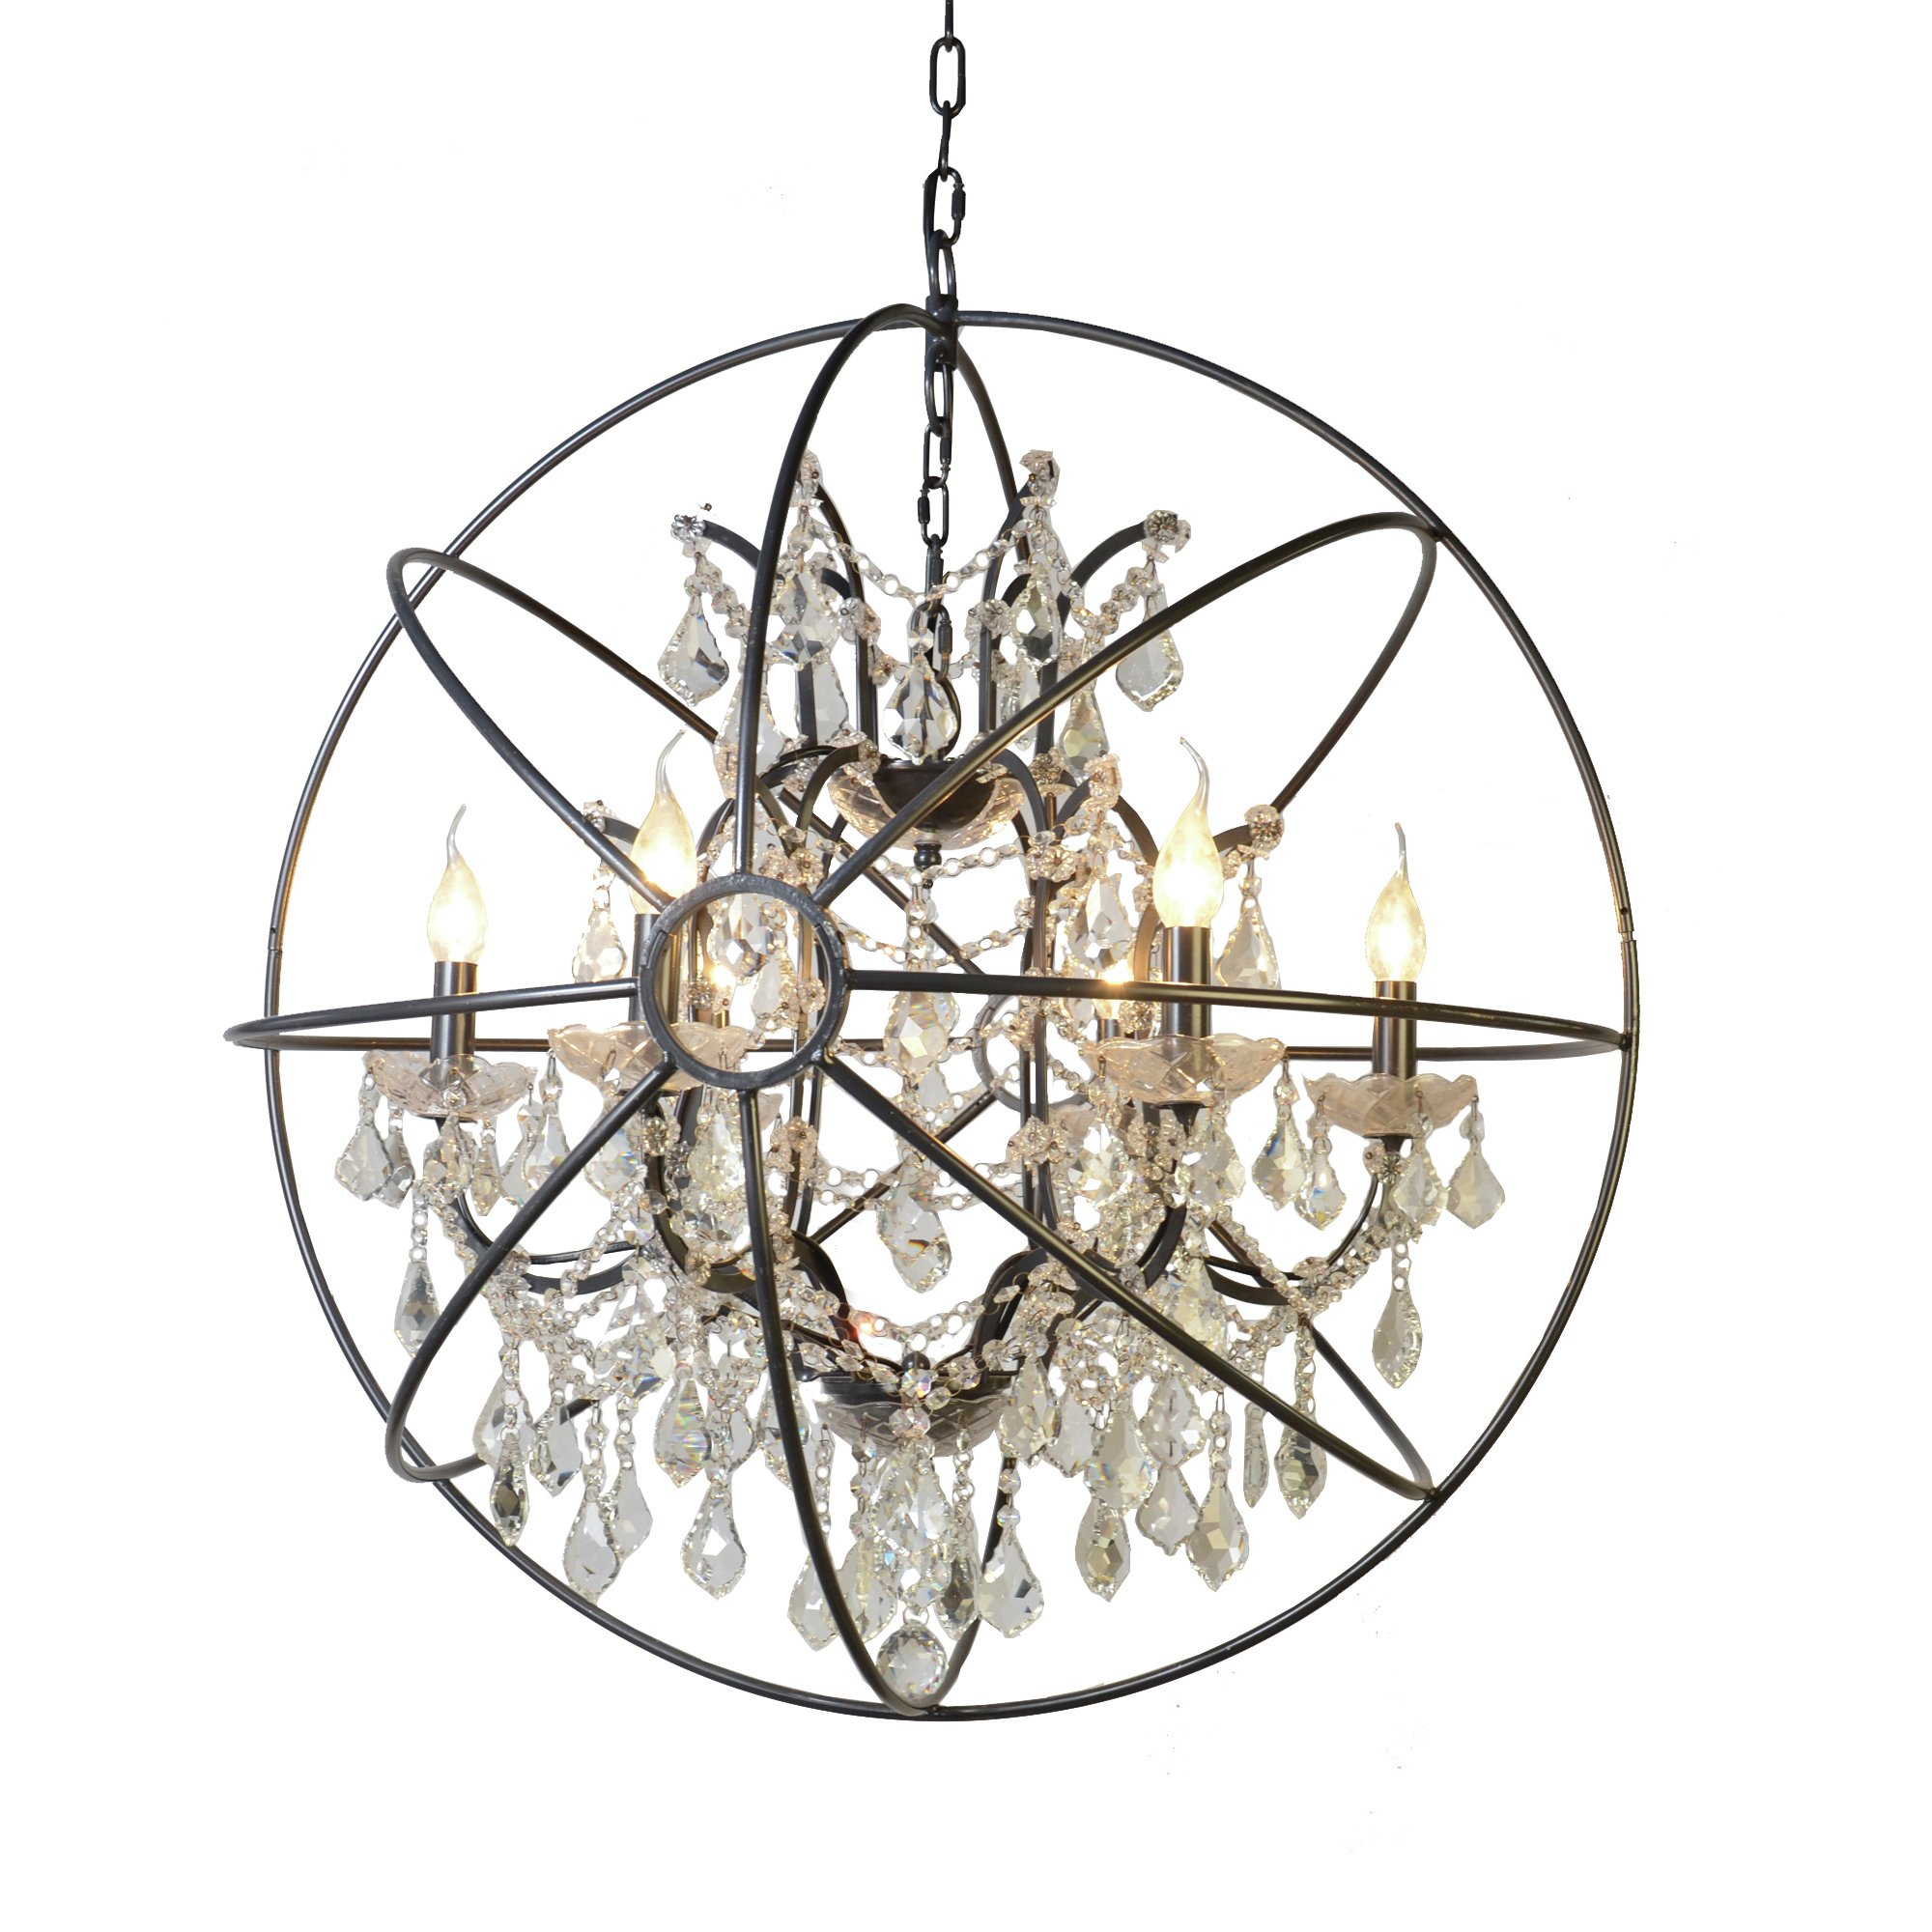 Cearbhall 6-Light Globe Chandelier for Alden 6-Light Globe Chandeliers (Image 9 of 30)